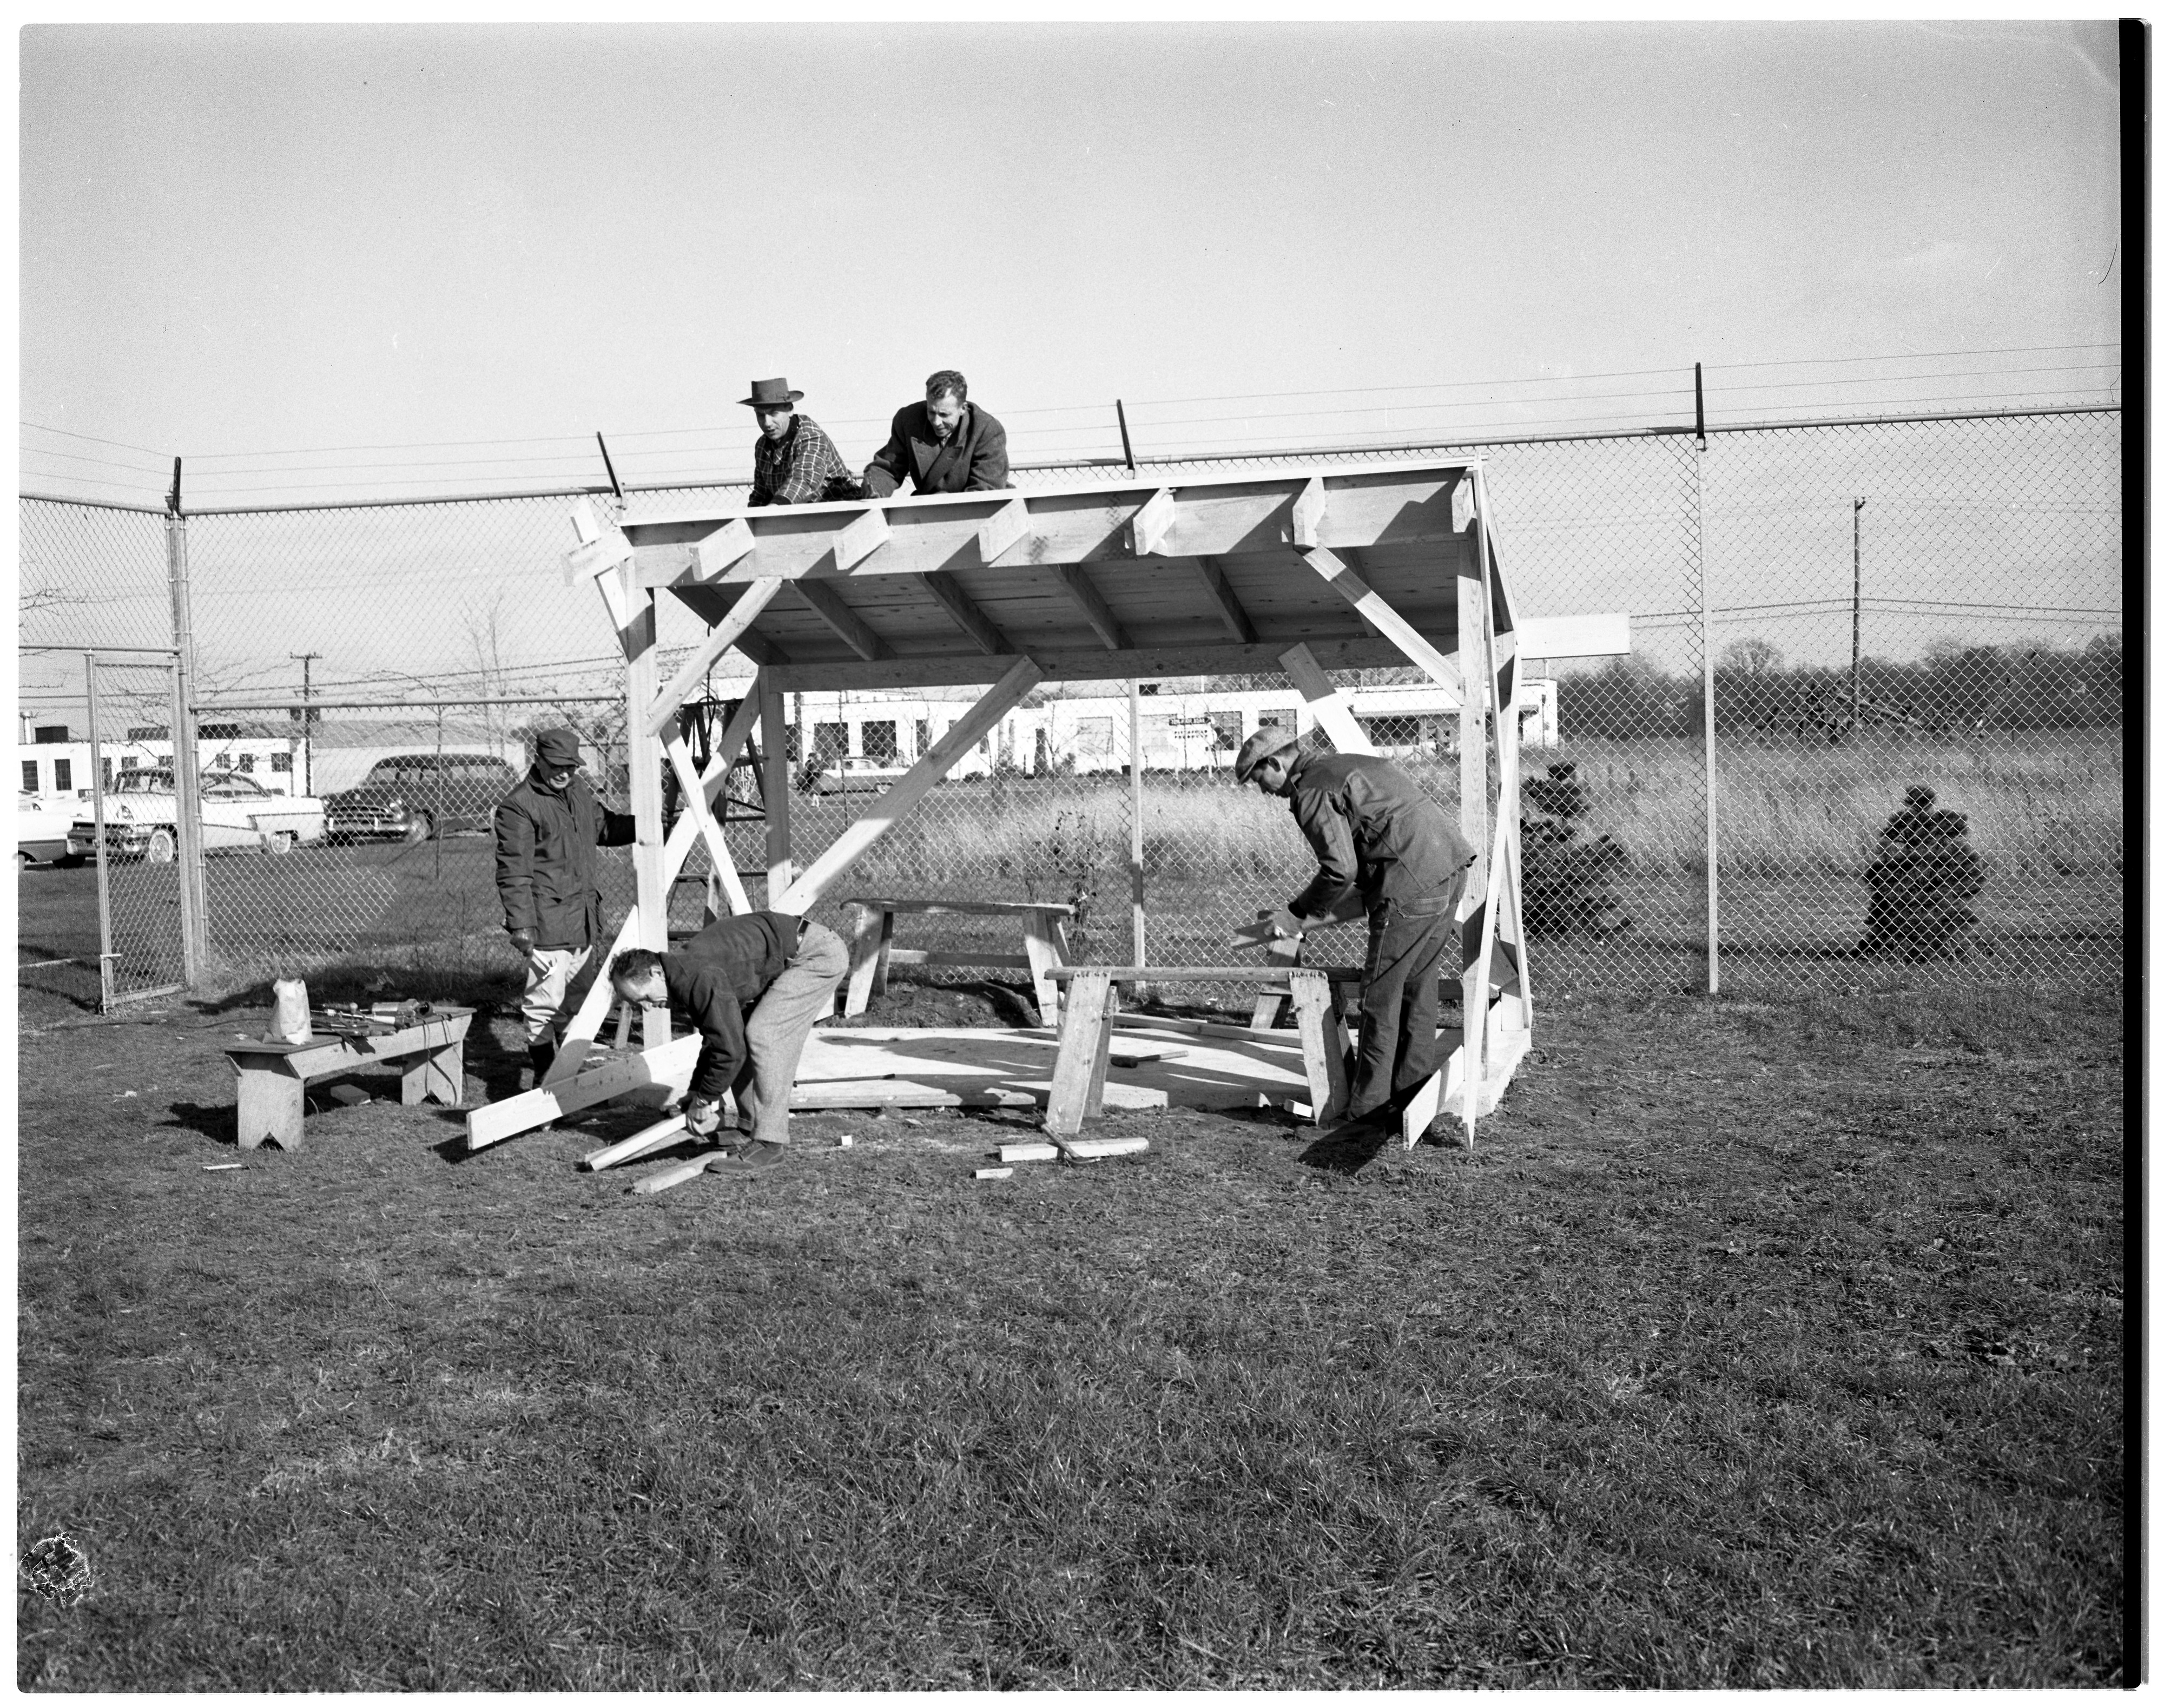 Kiwanis Club Members Build An Outdoor Play Shelter at Juvenile Home, November 1959 image